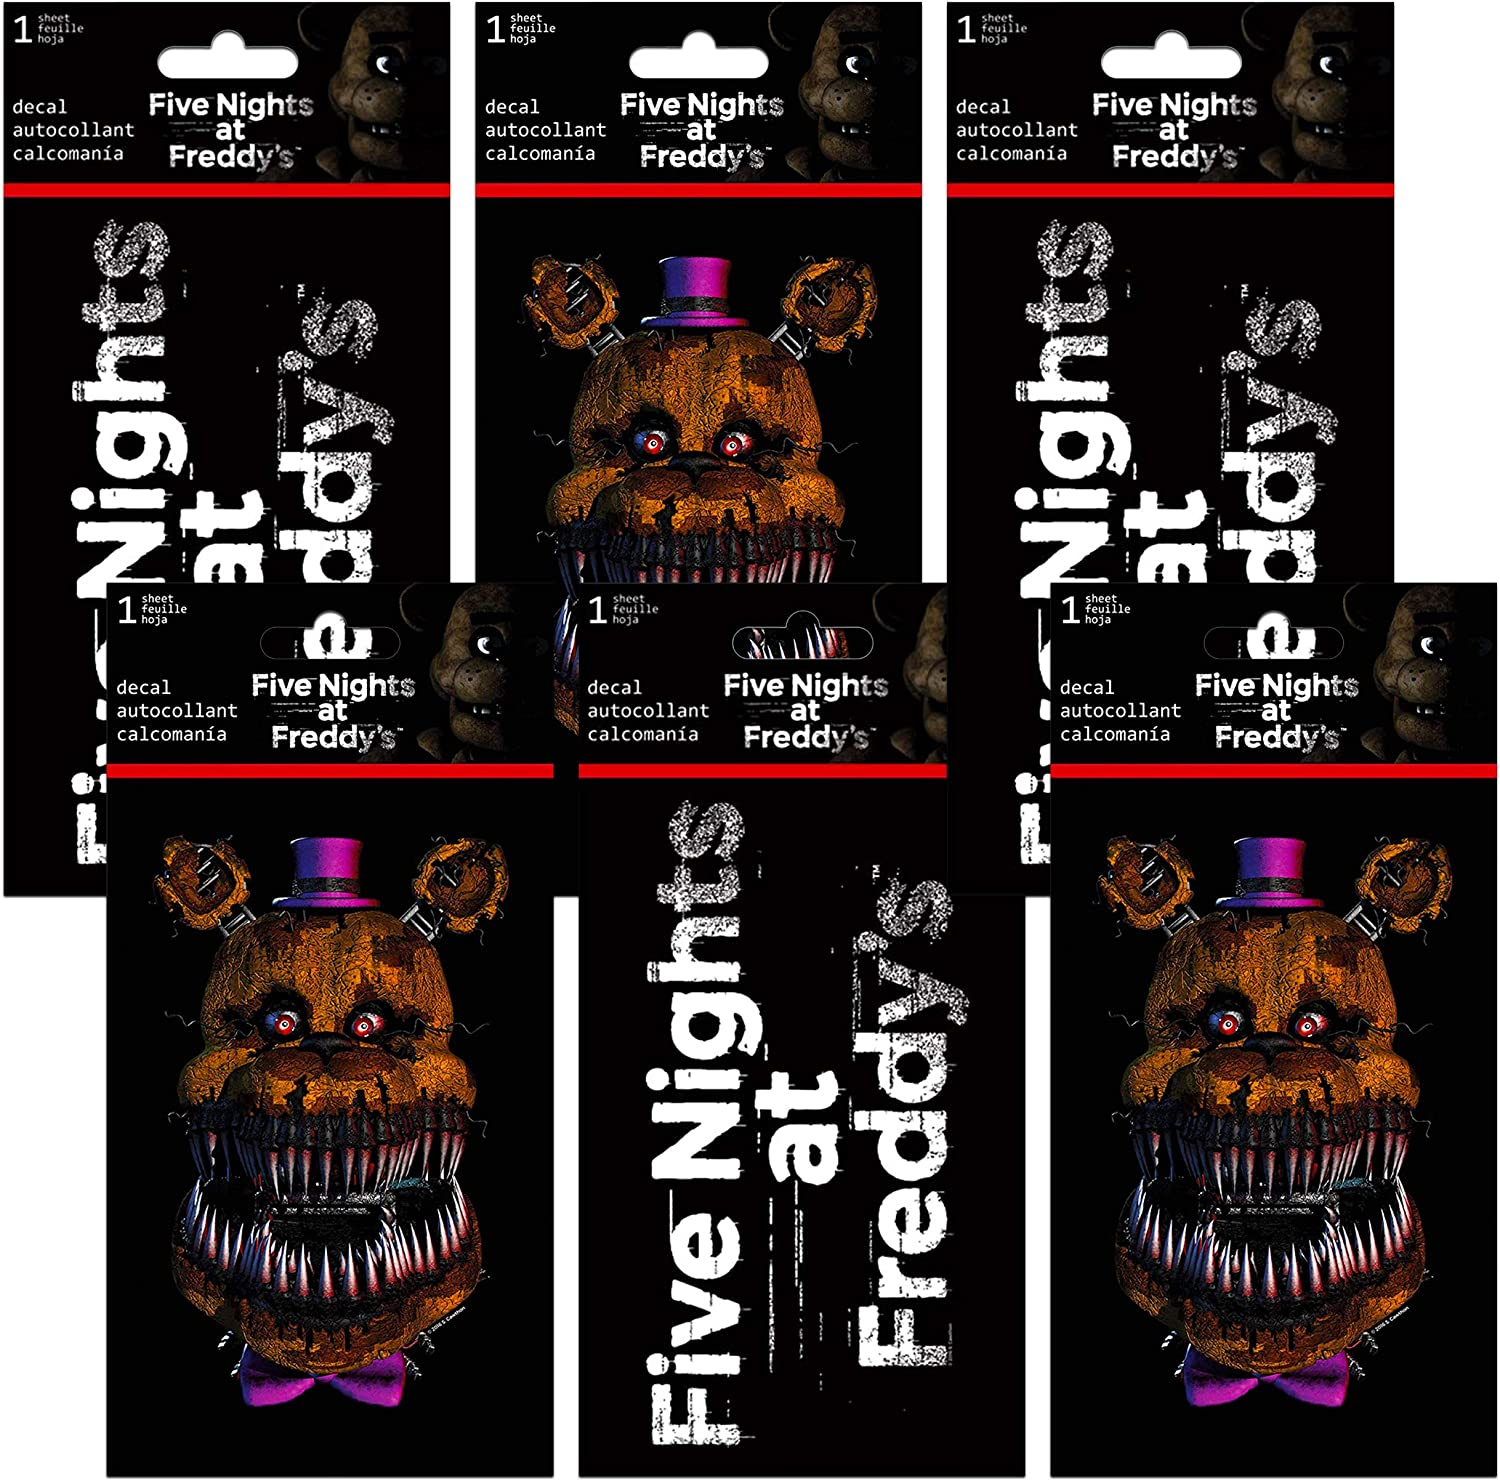 Five Nights at Freddy's Stickers Room Decor Bundle - 6 Pack Five Nights at Freddy's Wall Decorations (Five Nights at Freddy's Party Supplies)